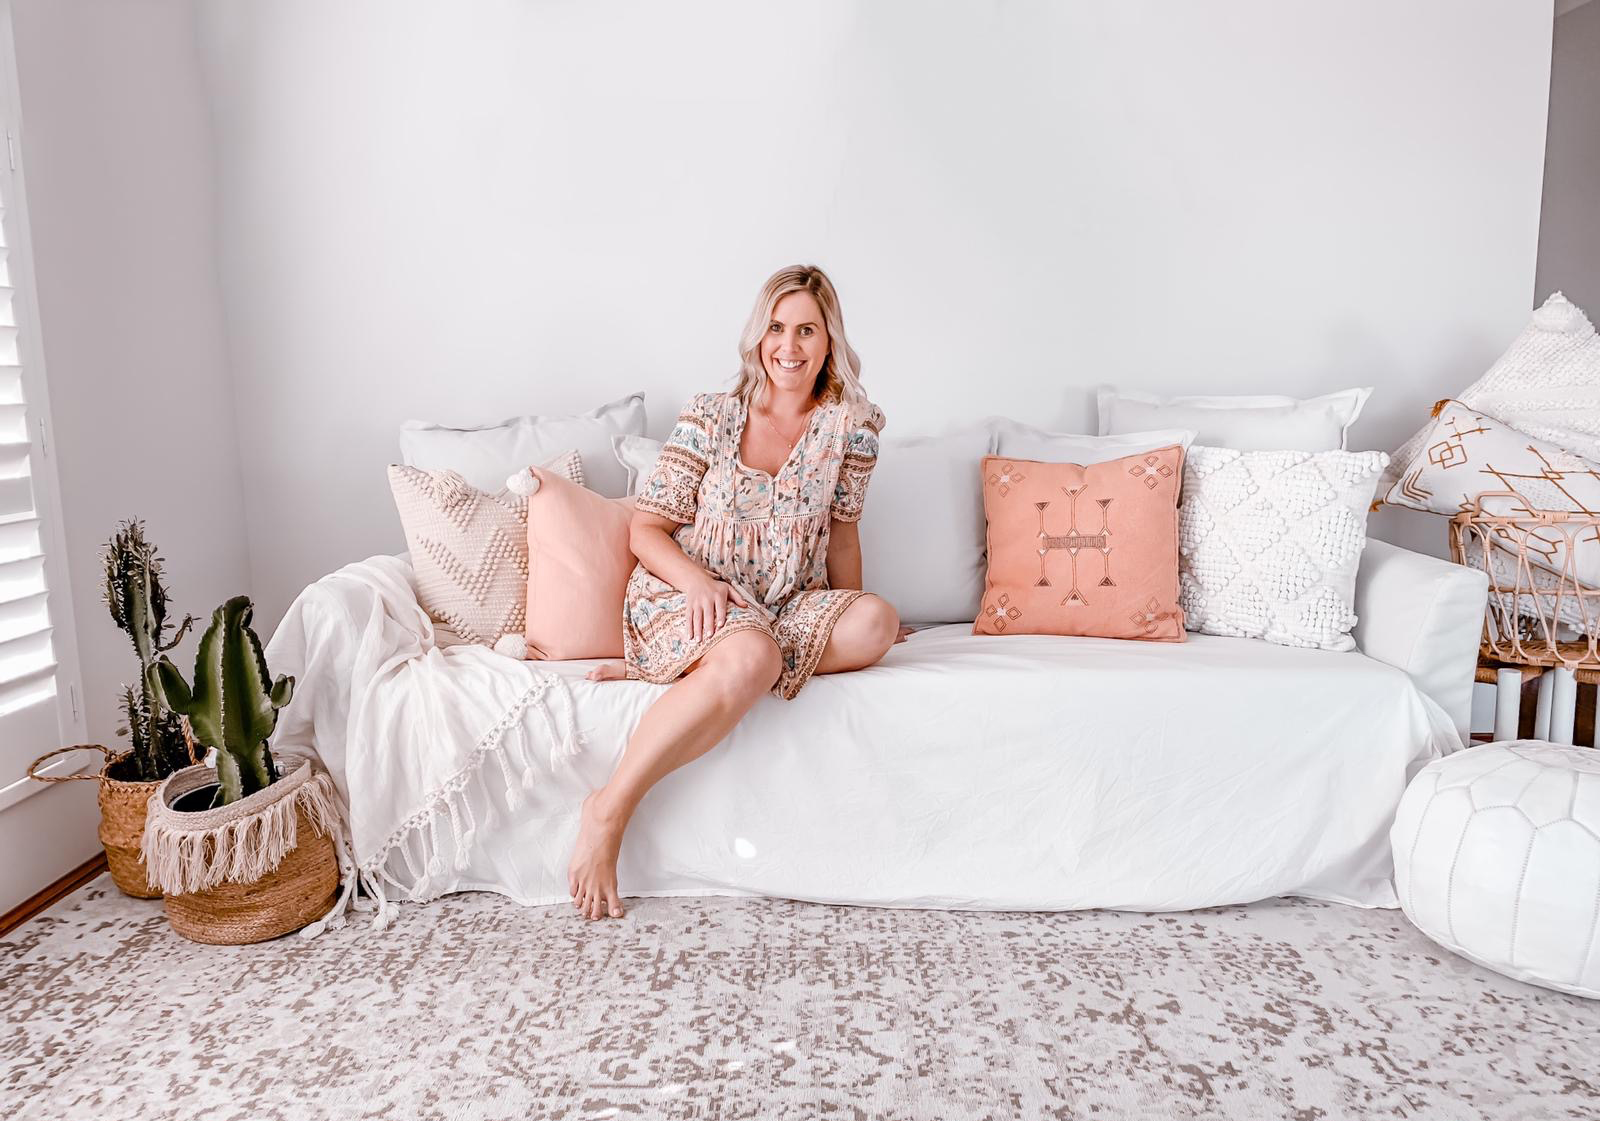 welcome to my place, caitlin hope blog with laura goodwin from the blush abode